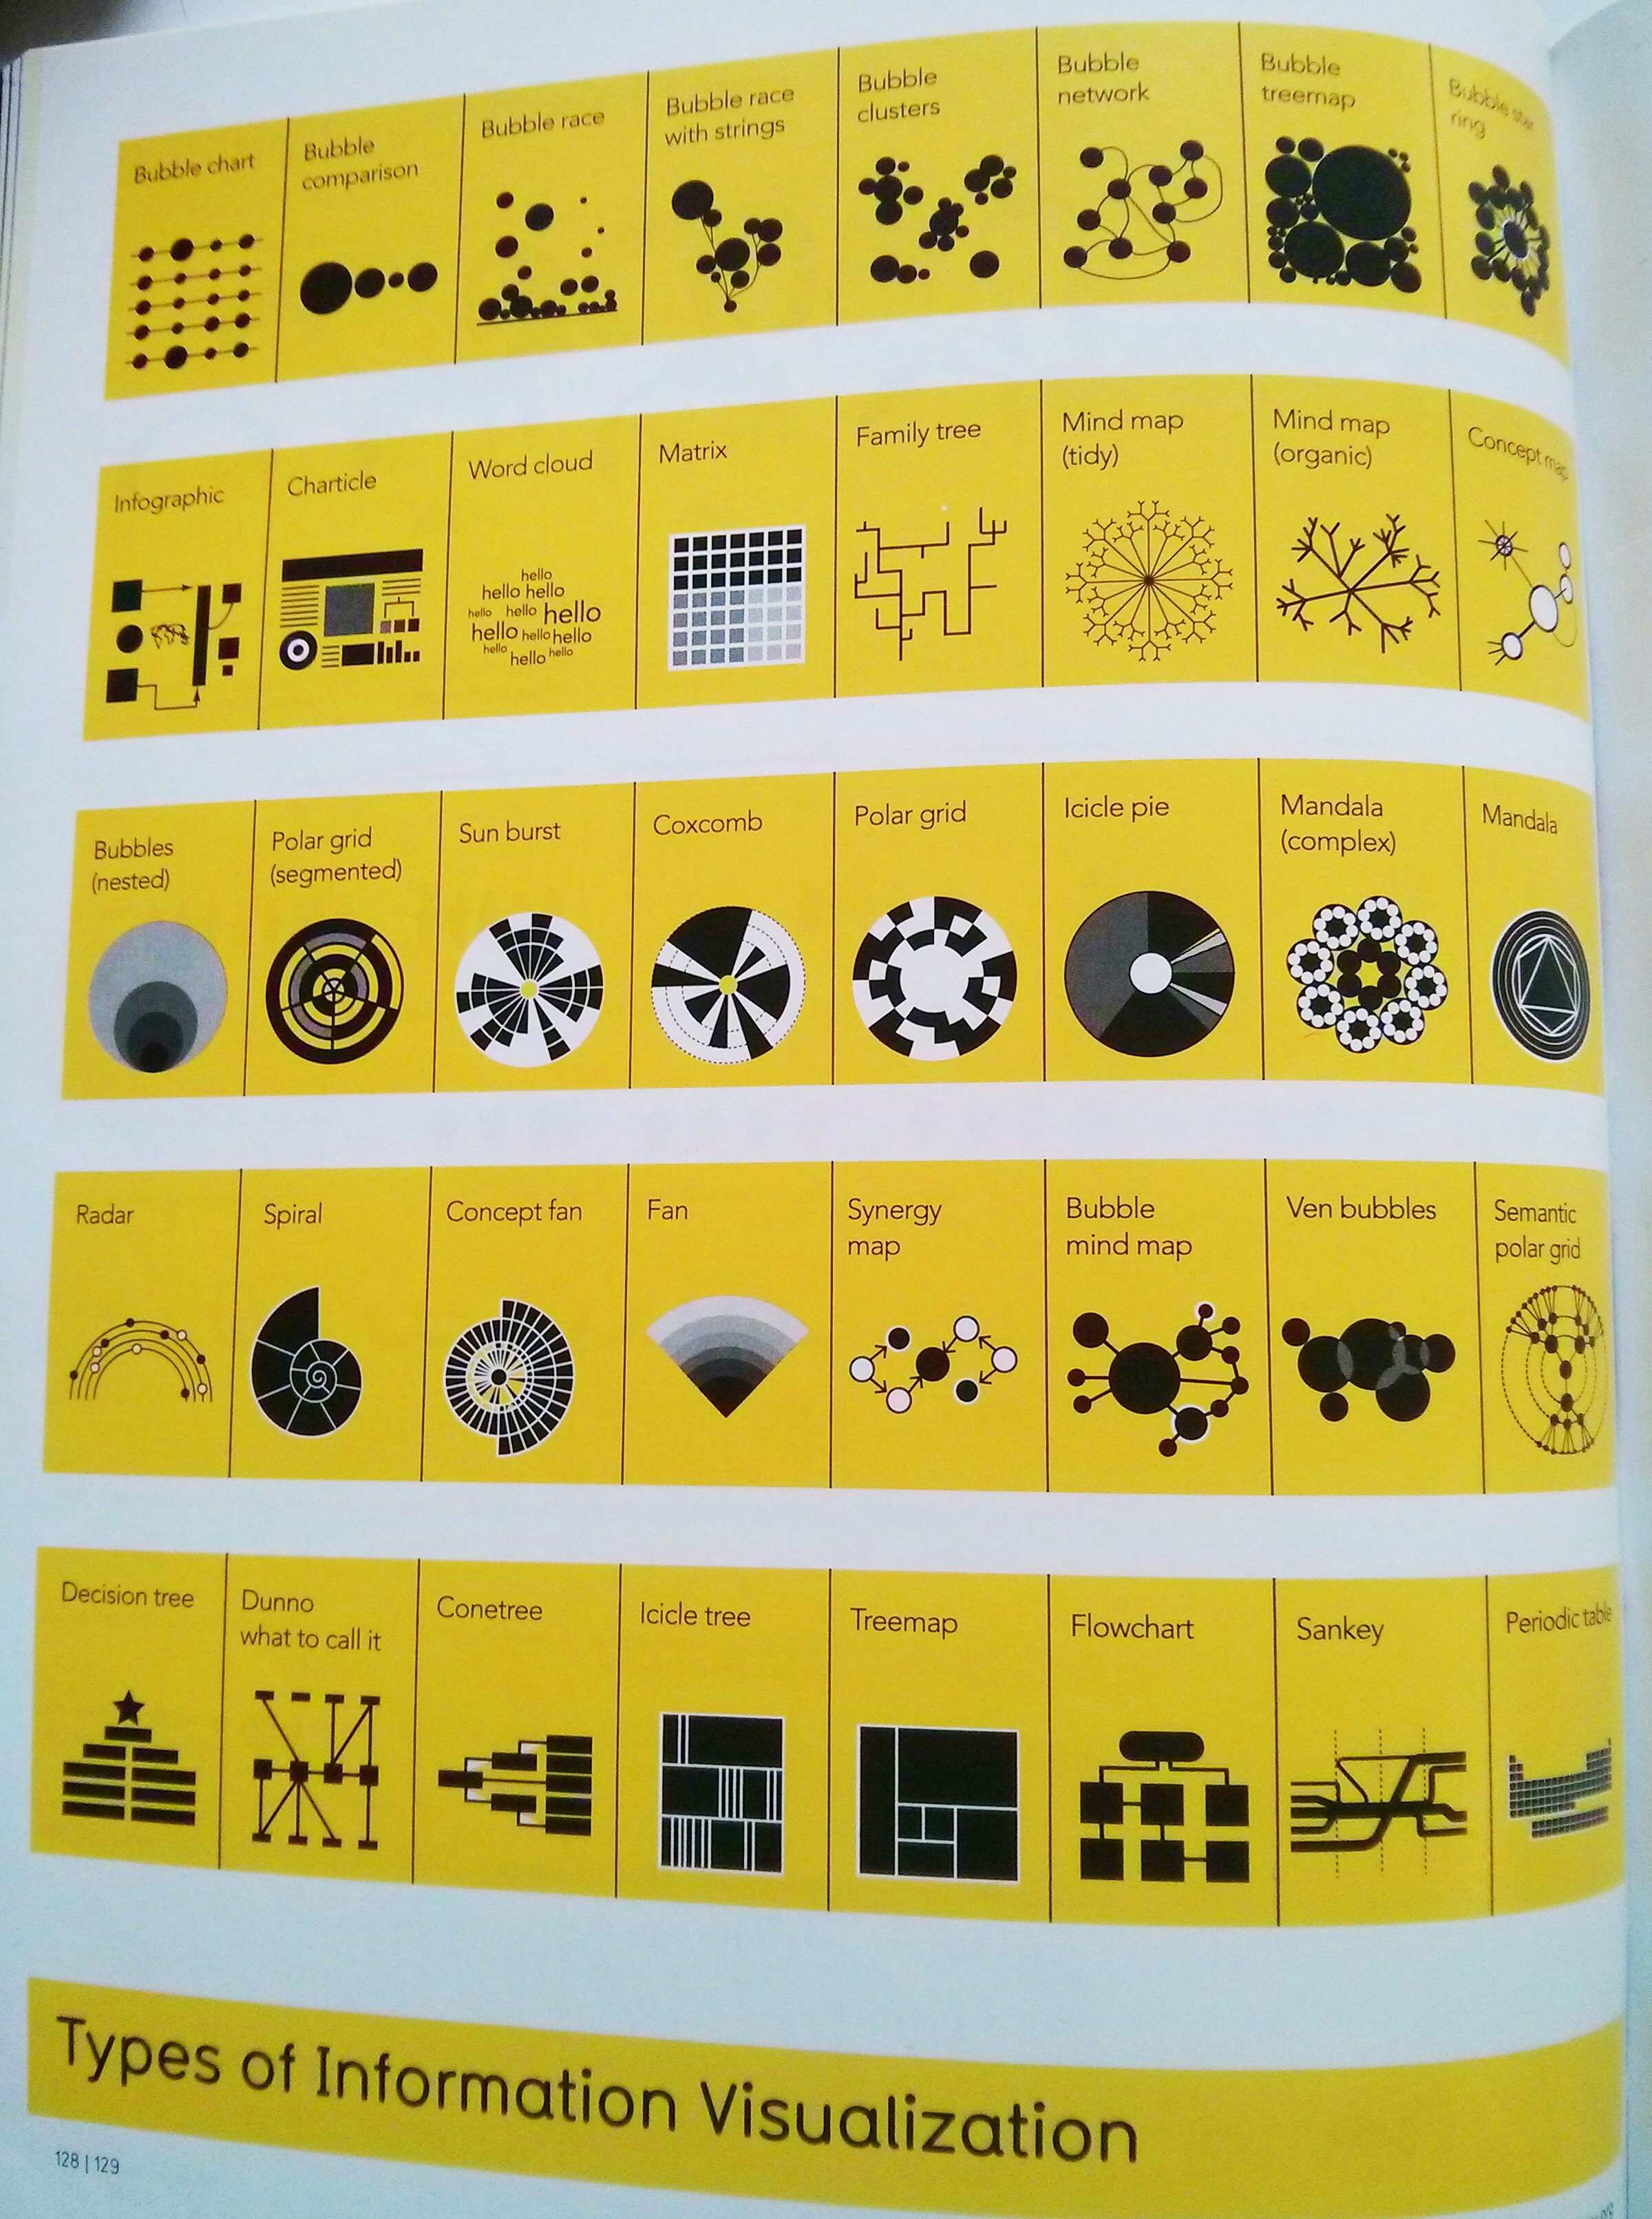 Types of information visualisation